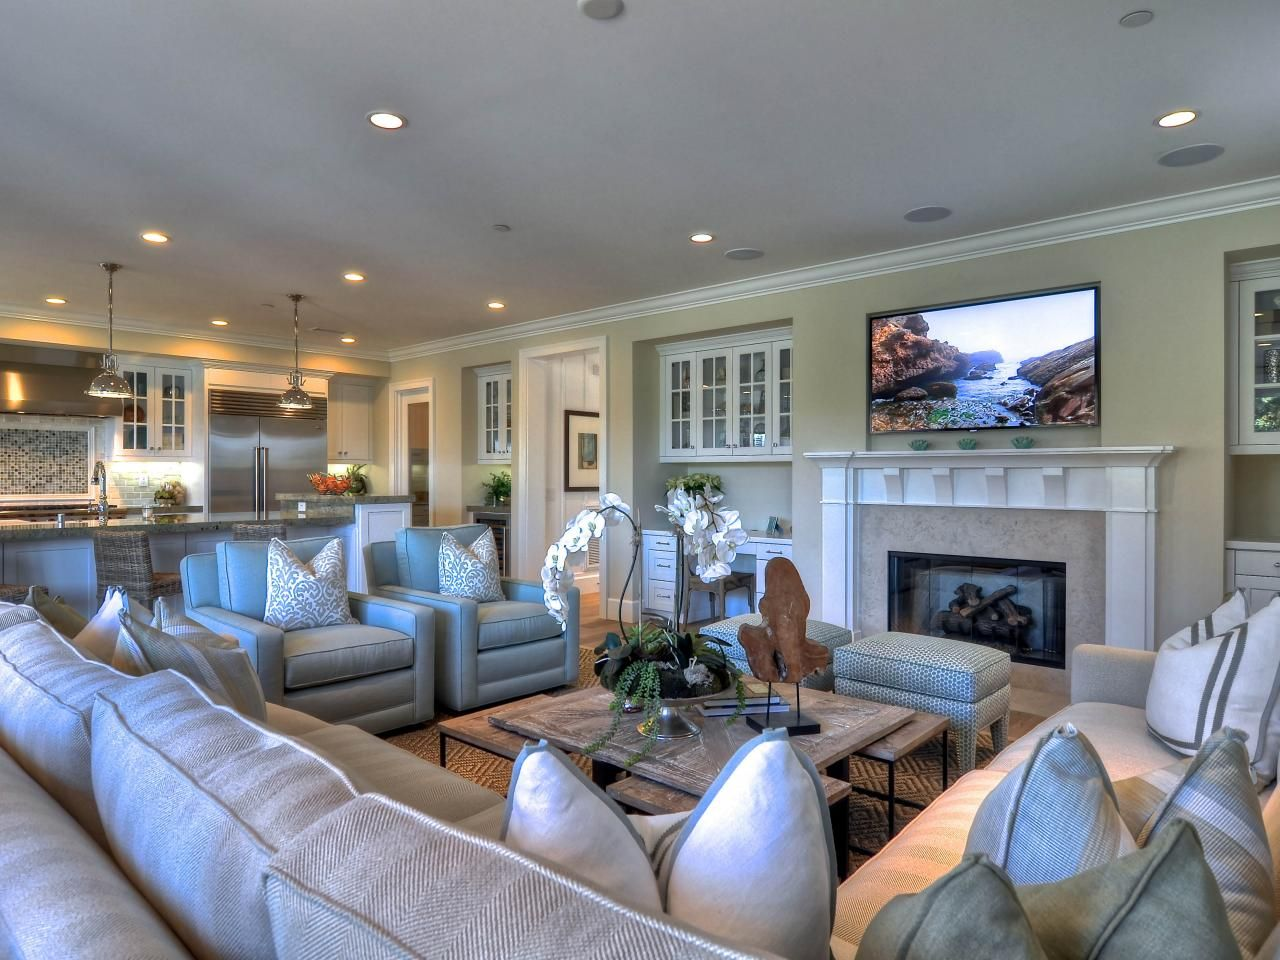 Coastal decor is found in the details in this spacious for Large sofa small room